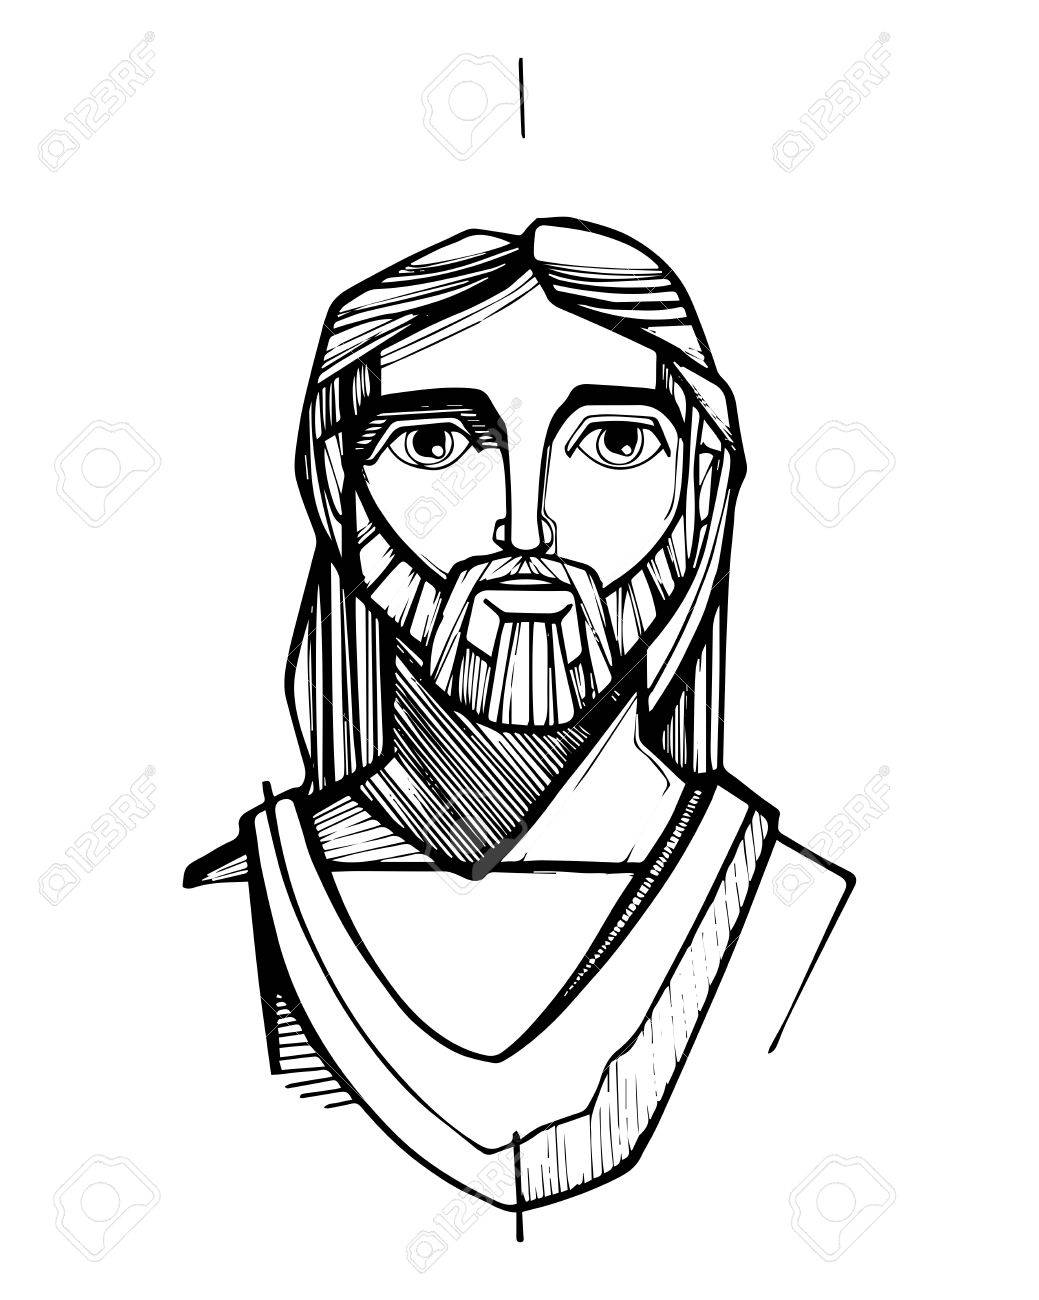 Hand Drawn Vector Illustration Or Drawing Of Jesus Christ Face Stock Vector    63978992